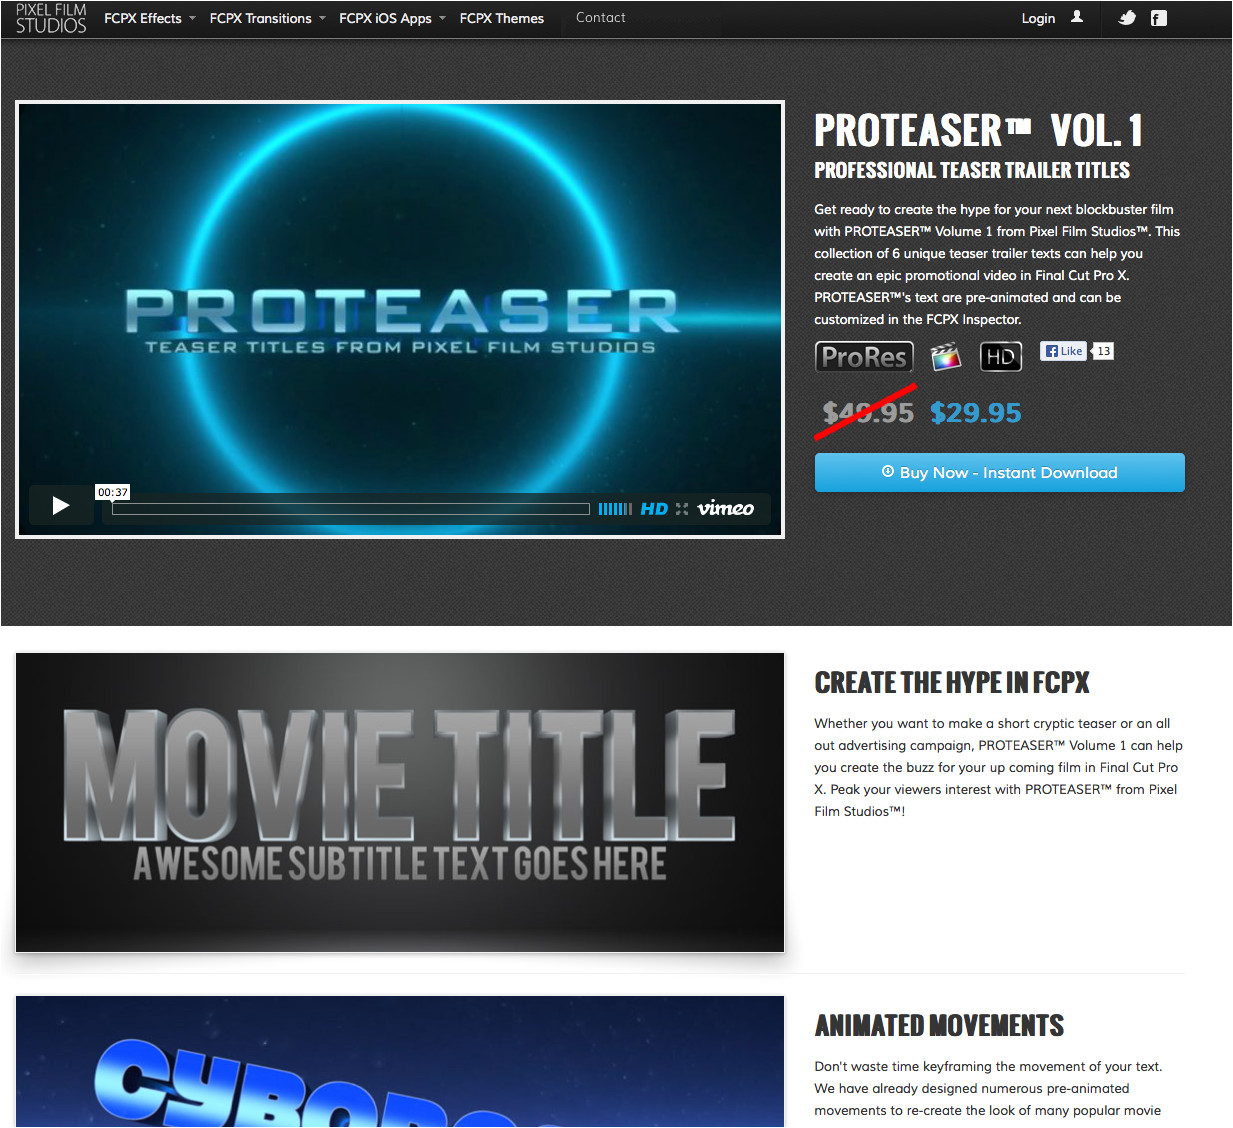 Fcpx Trailer Templates Pixel Film Studios Releases Proteaser Teaser Trailer